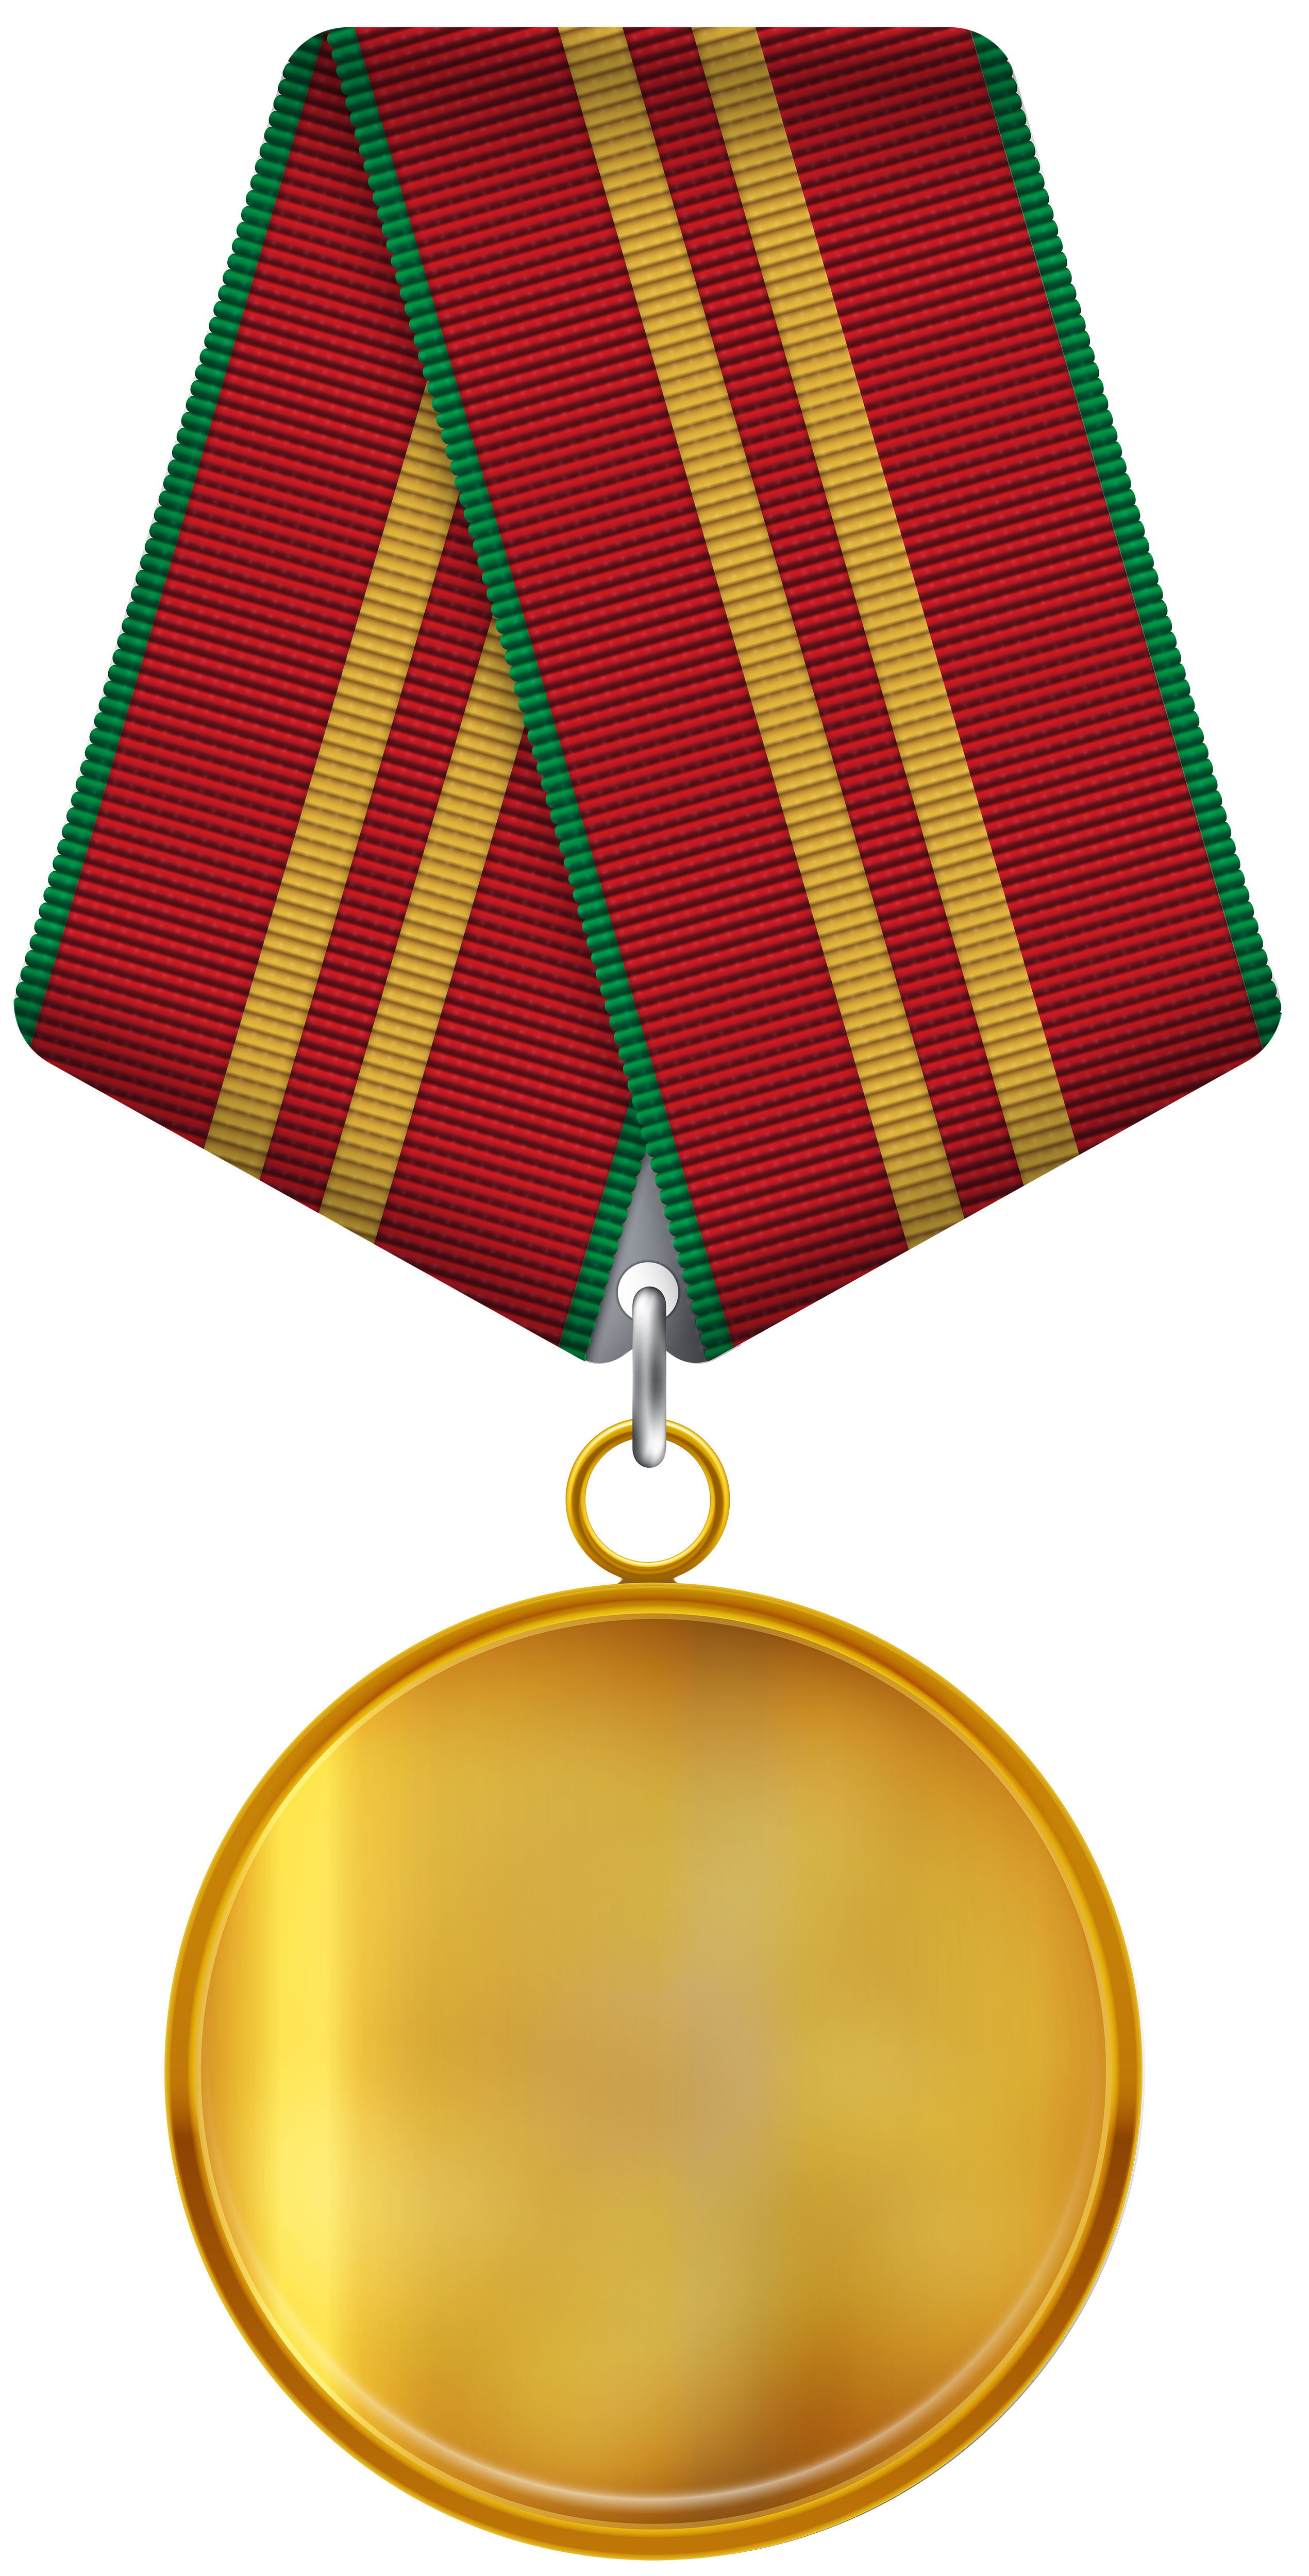 Medal clipart. Free png clip art